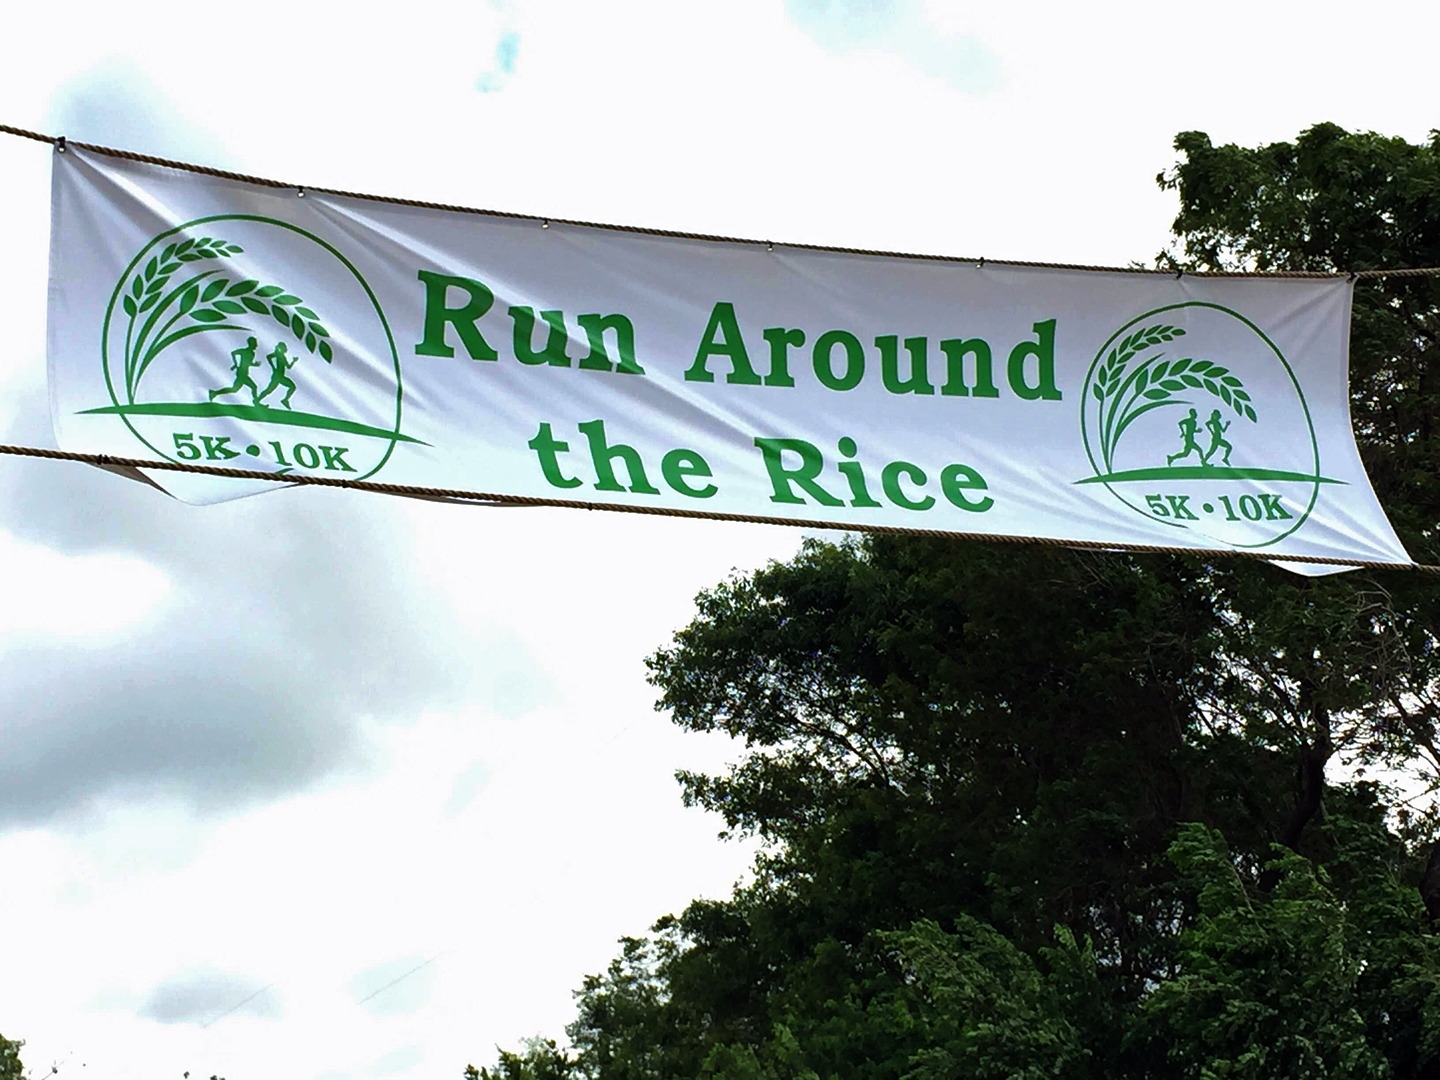 Run around the Rice